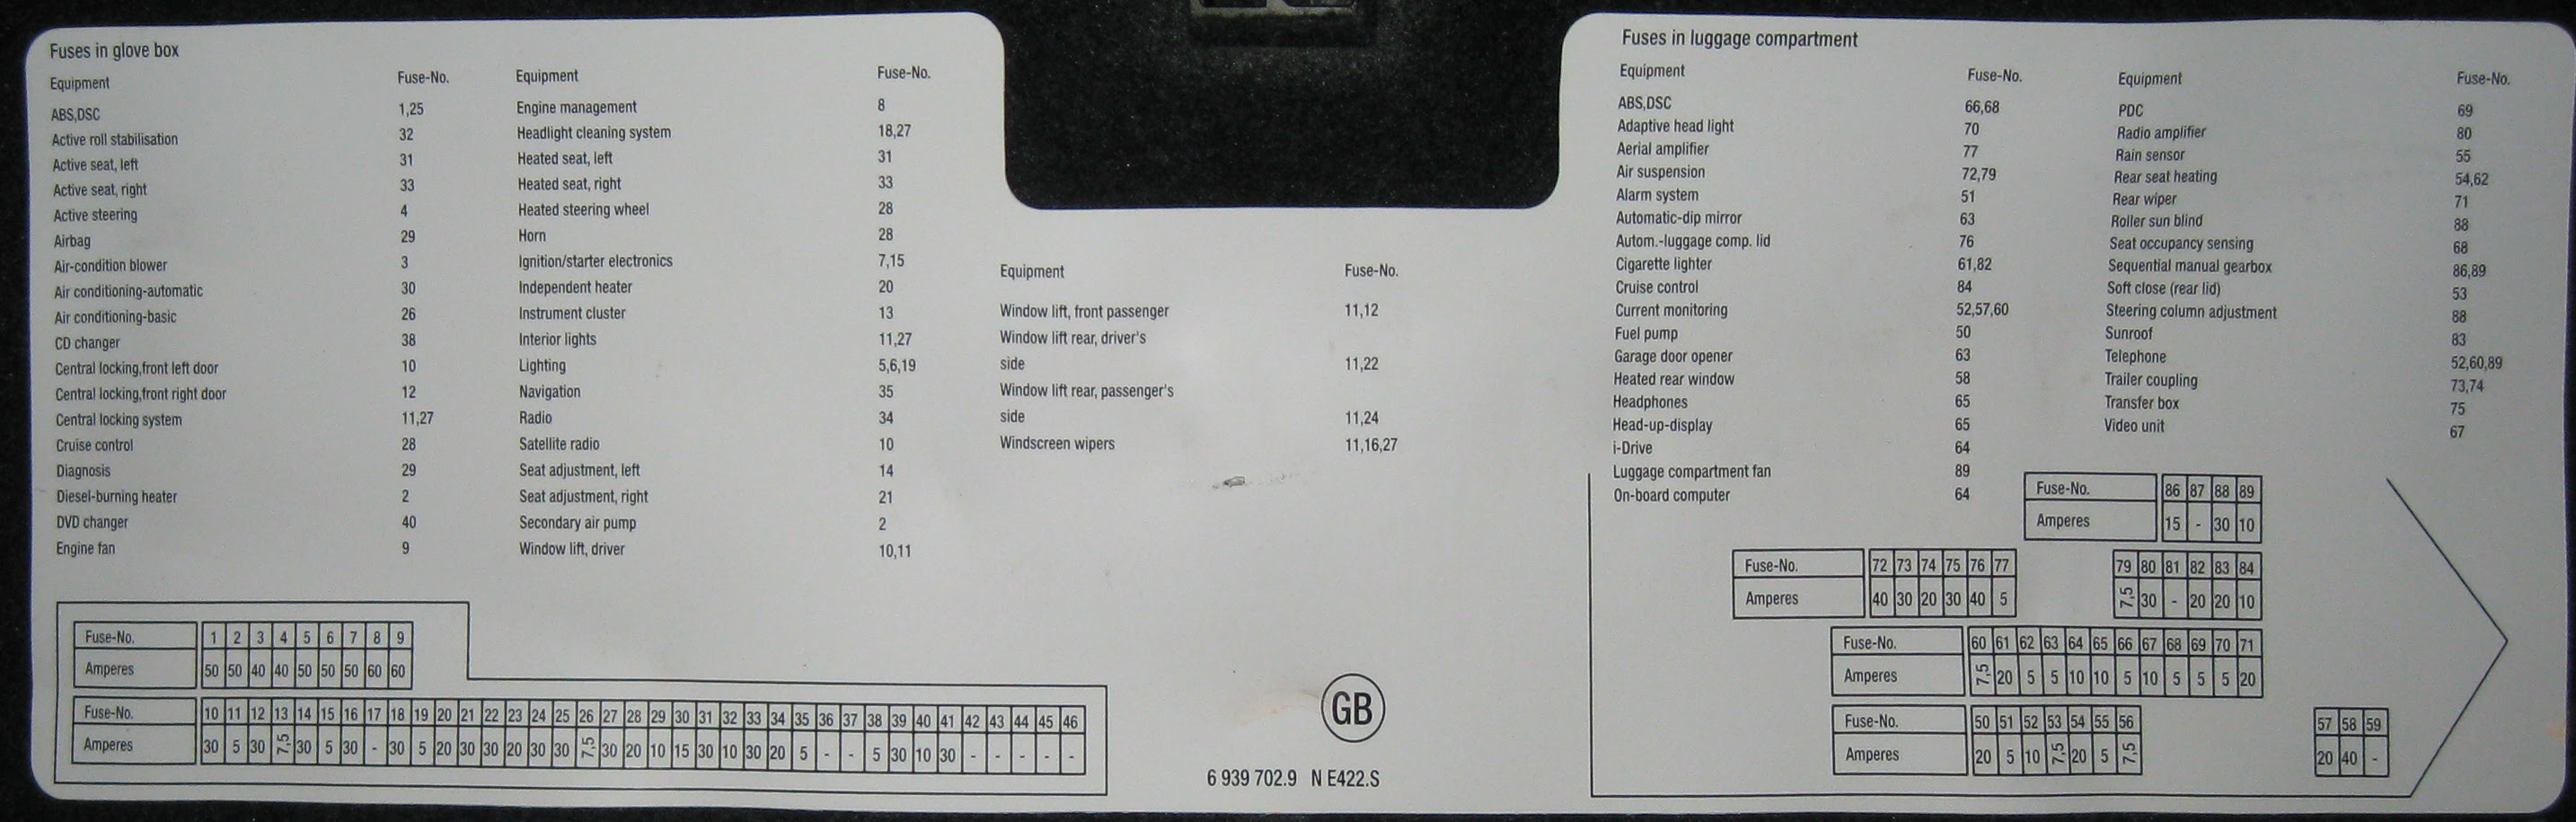 Download Schema 2006 Bmw M5 Fuse Panel Diagram Full Quality Insectdiagram Bruxelles Enscene Be